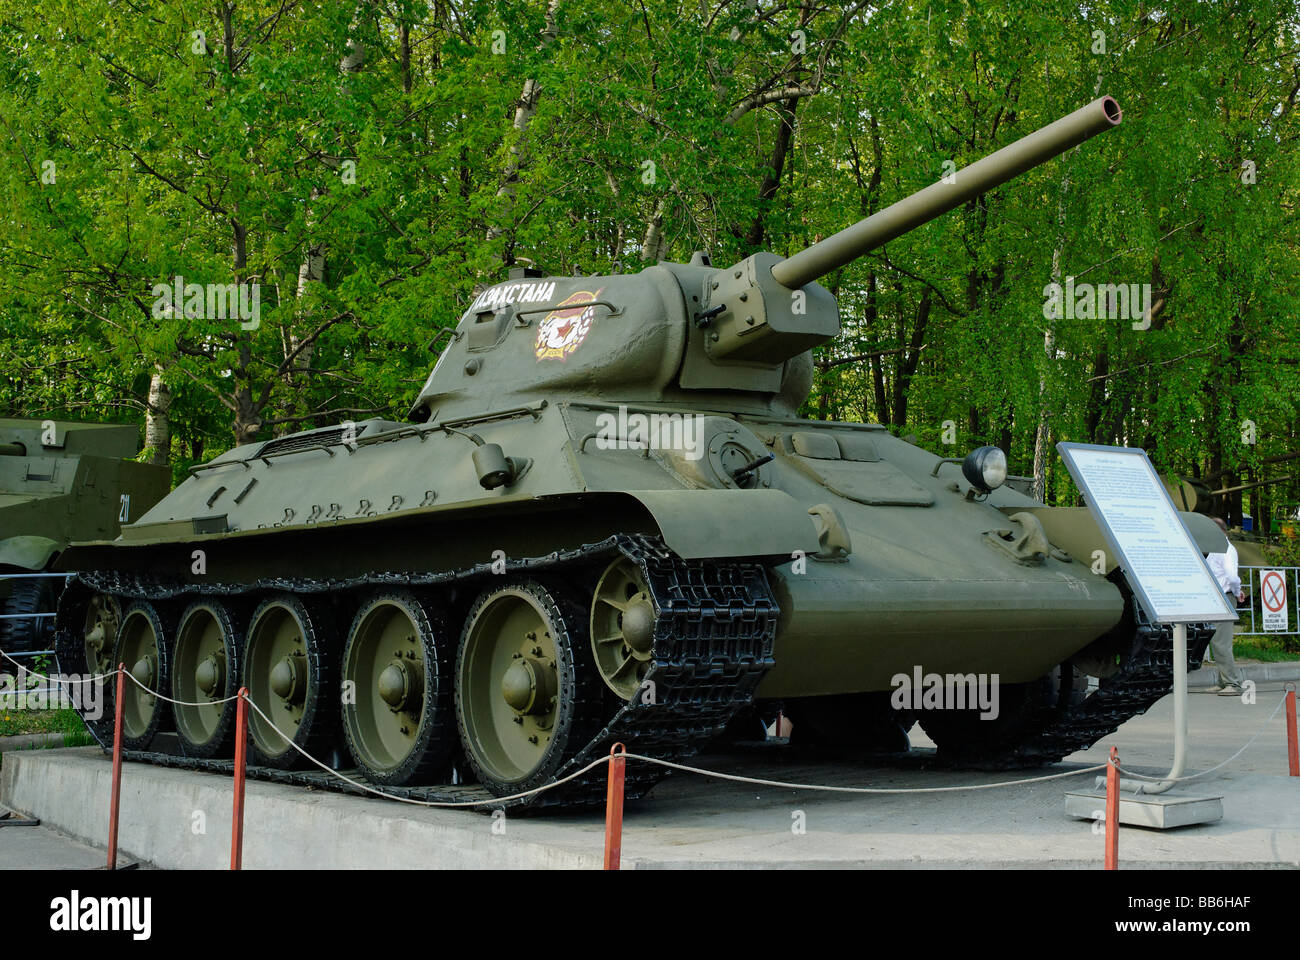 Soviet tank T 34 as exhibit in Moscow Weaponry Museum on Poklonnaya Hill - Stock Image